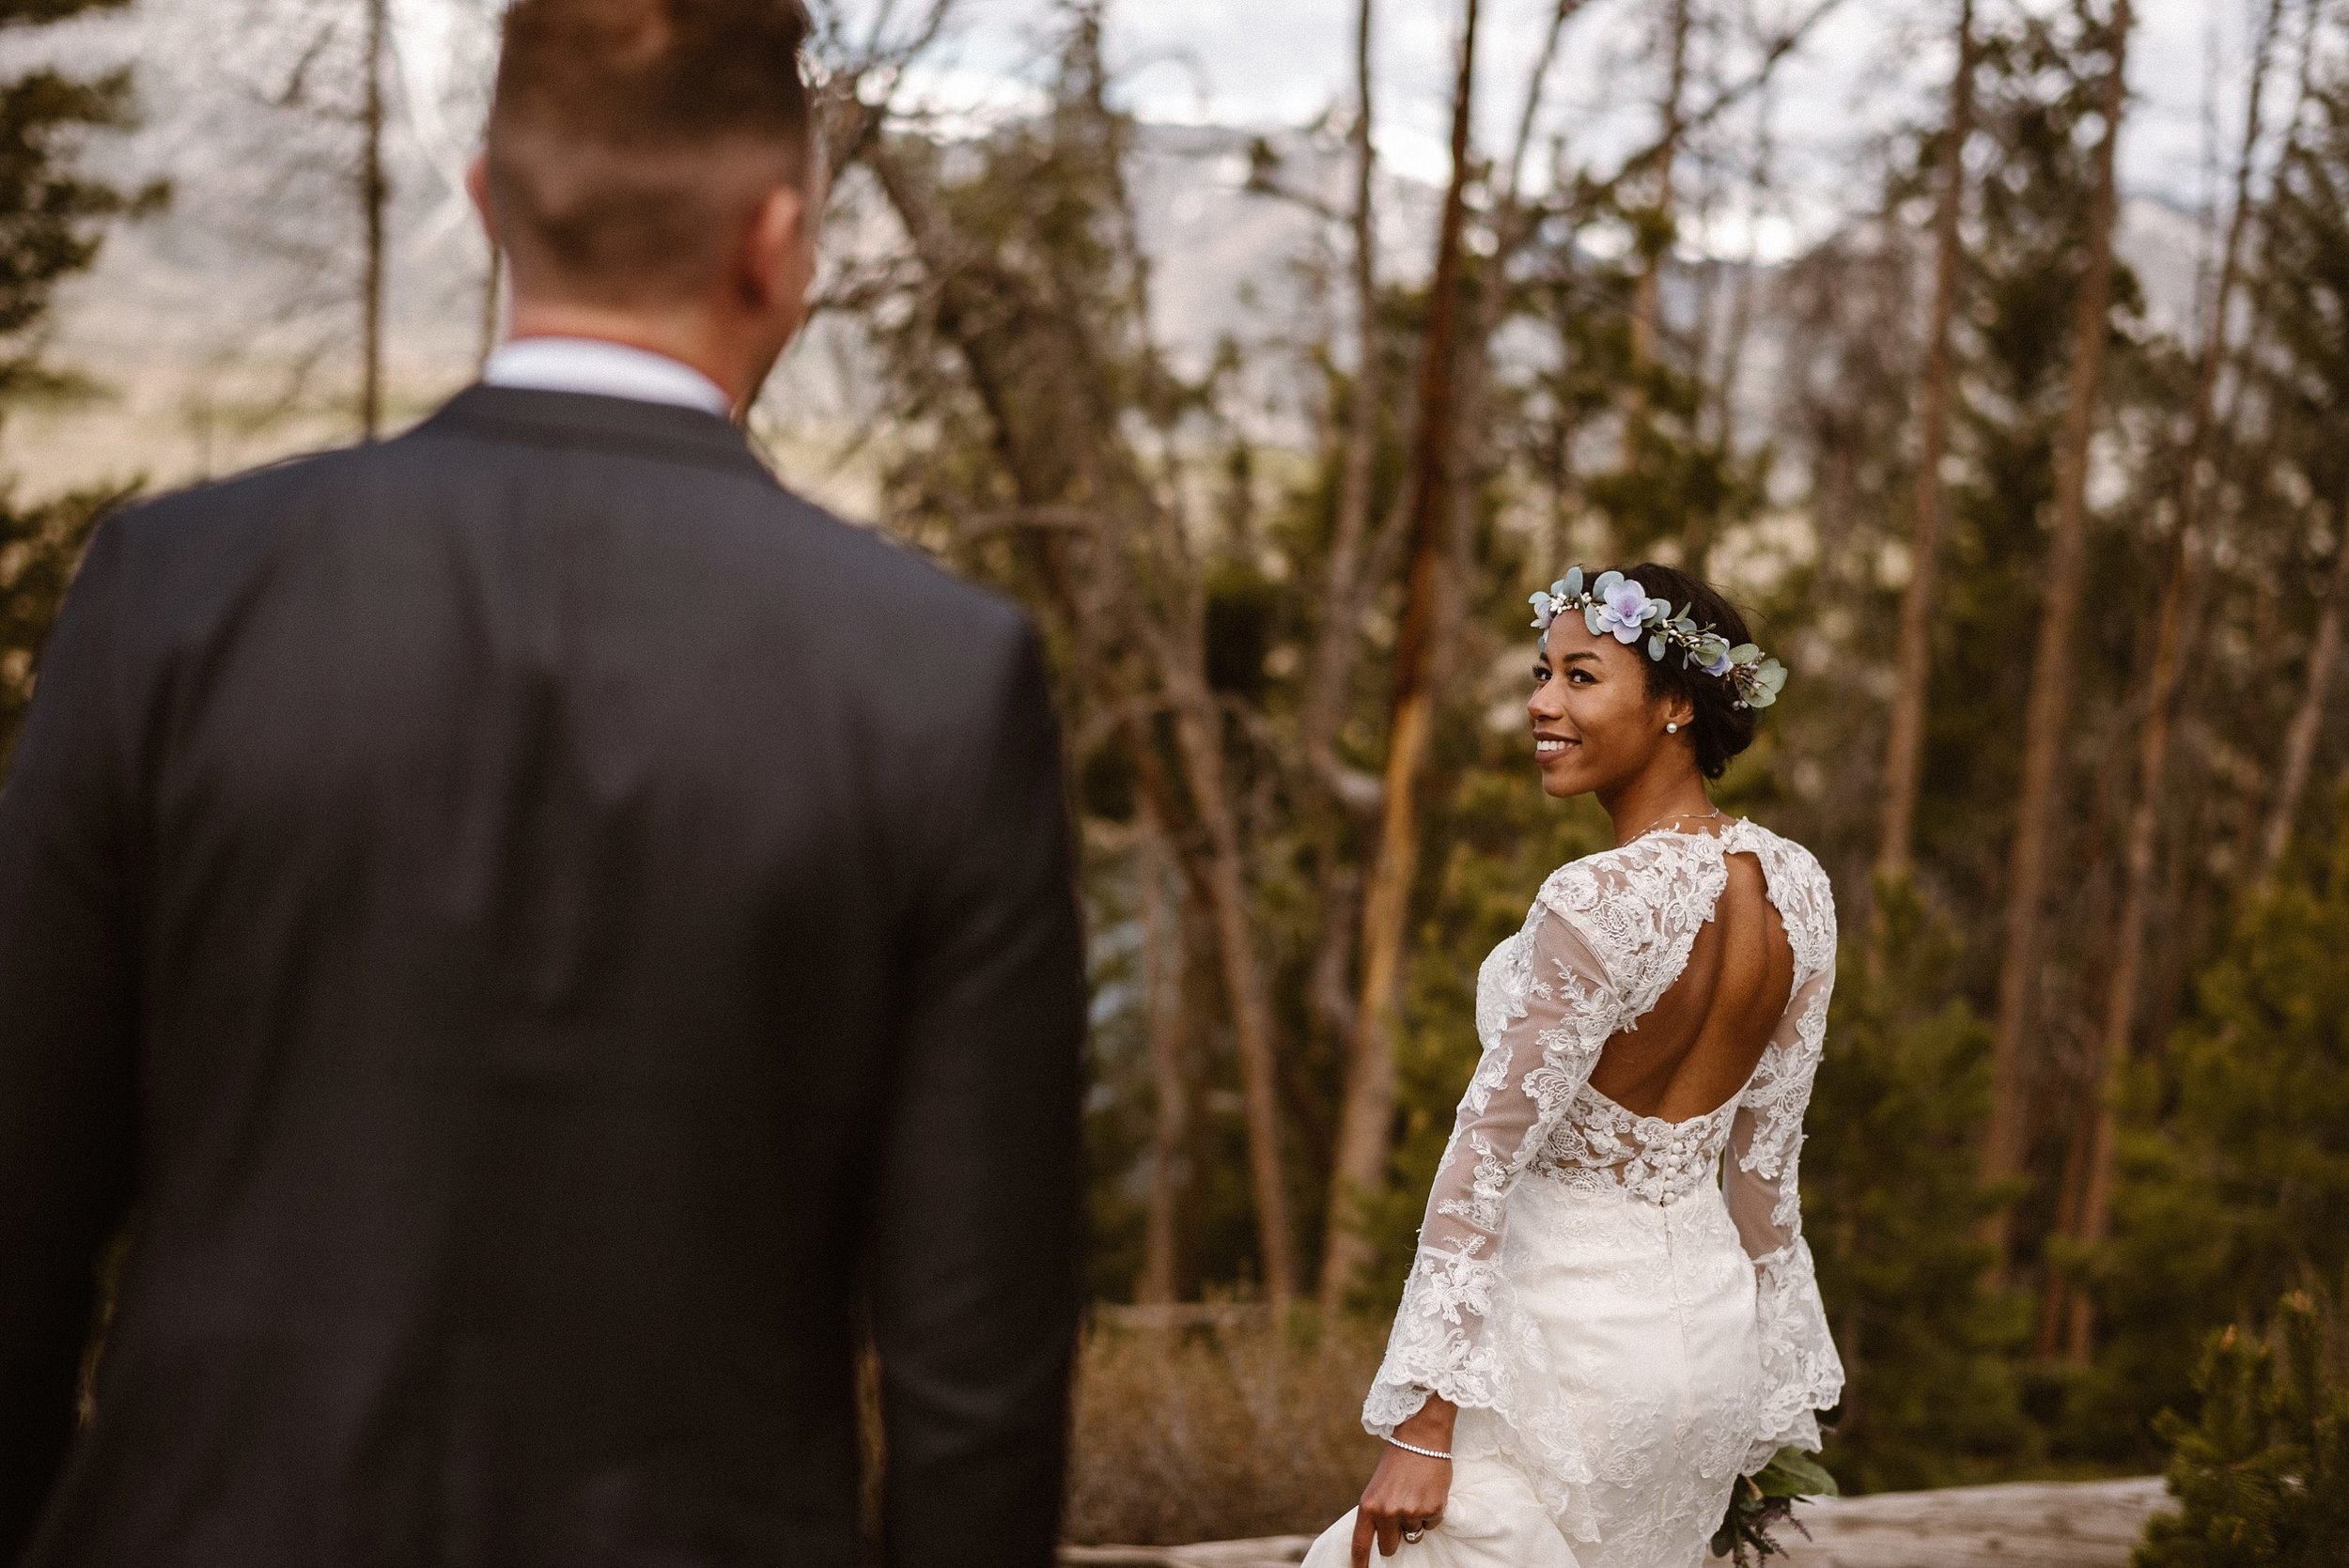 Hiking down to Dillon reservoir, Jared and Mikayla meandered their way through old fallen forests with the snow capped Rocky Mountains off in the distance. Photos of this intimate adventurous elopement by traveling wedding photographer Maddie Mae.